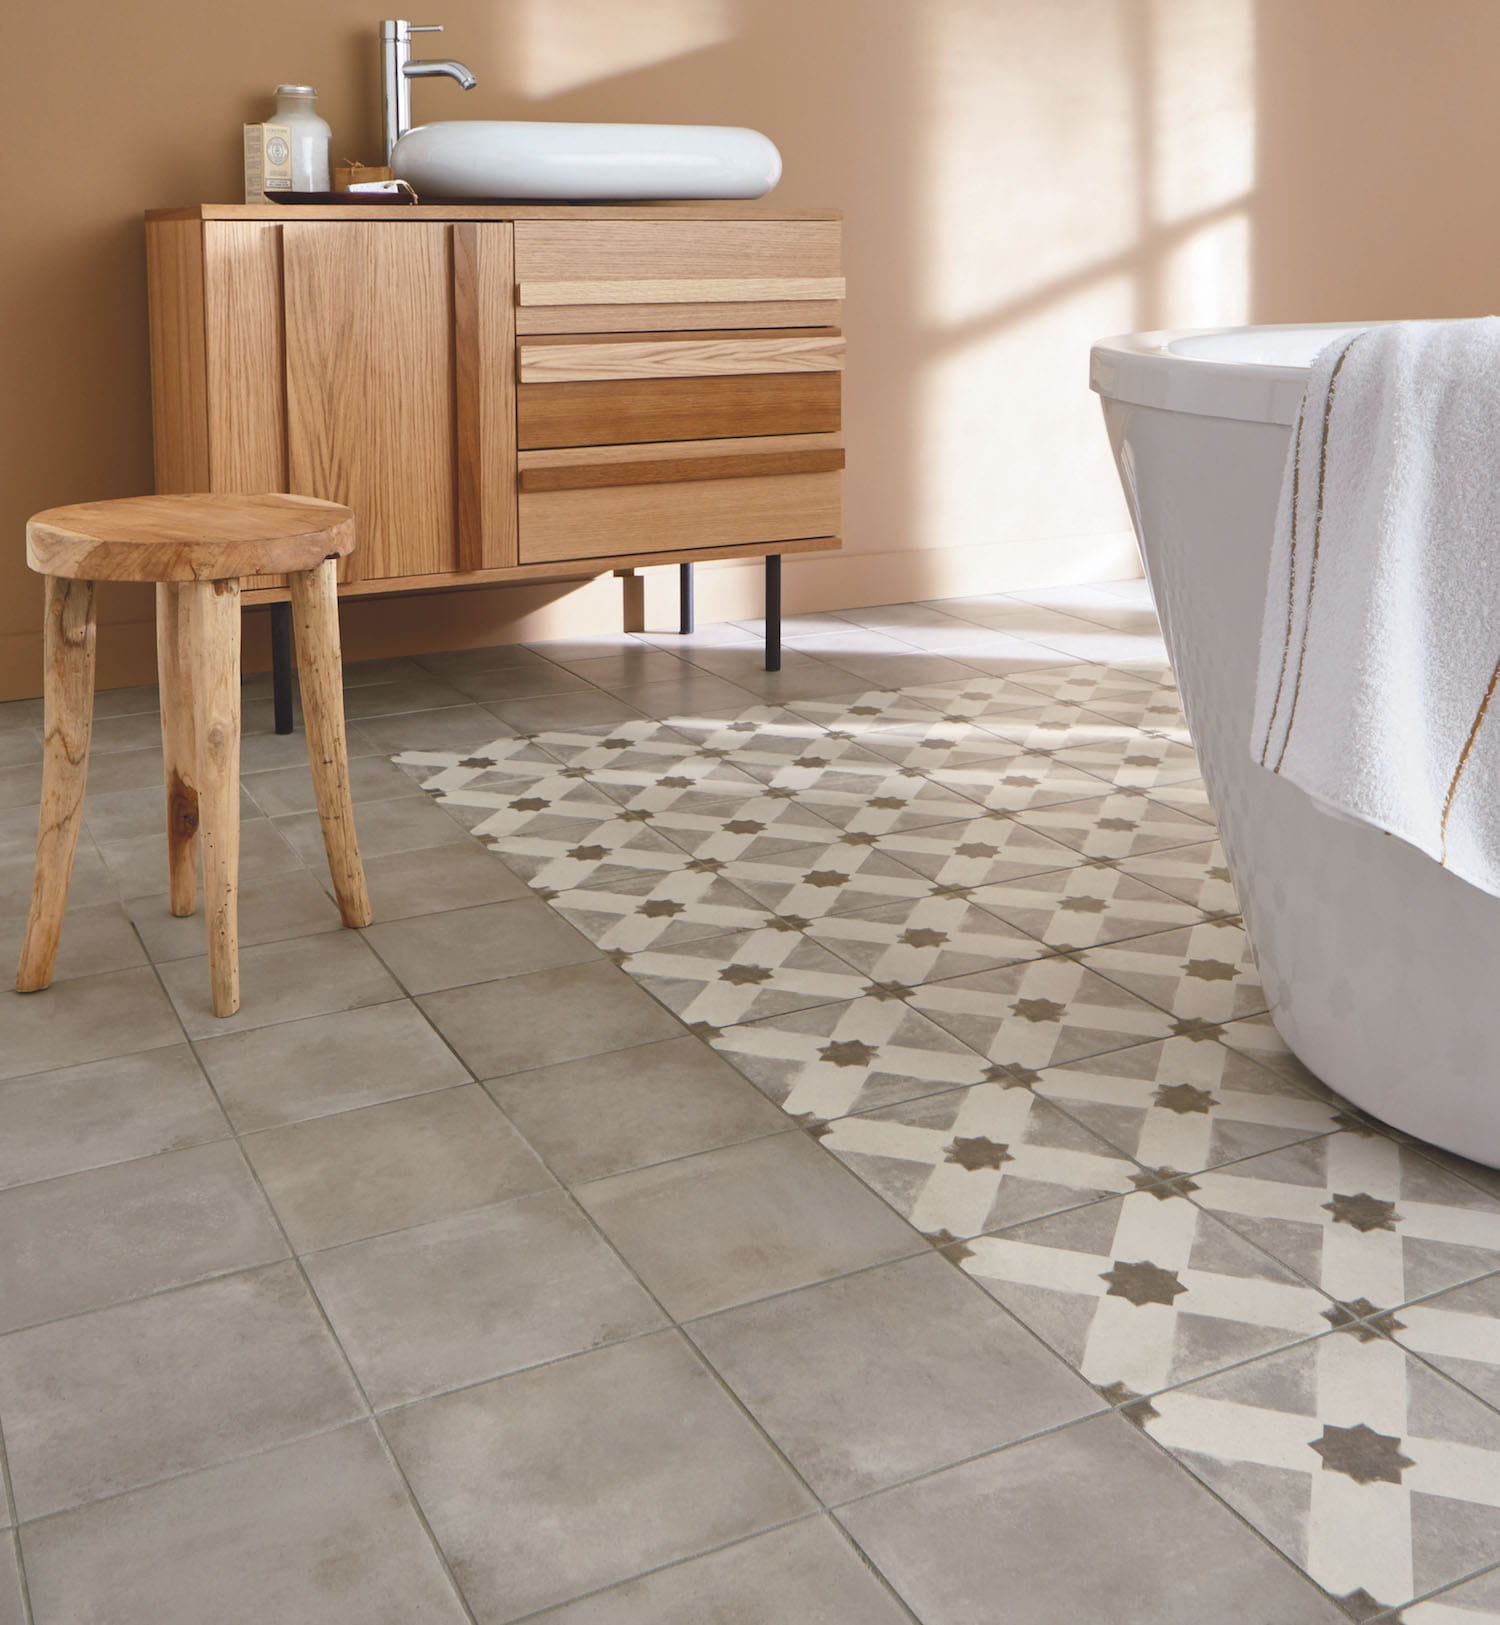 Le mix carrelage et carreaux de ciment for Carrelage pour sol